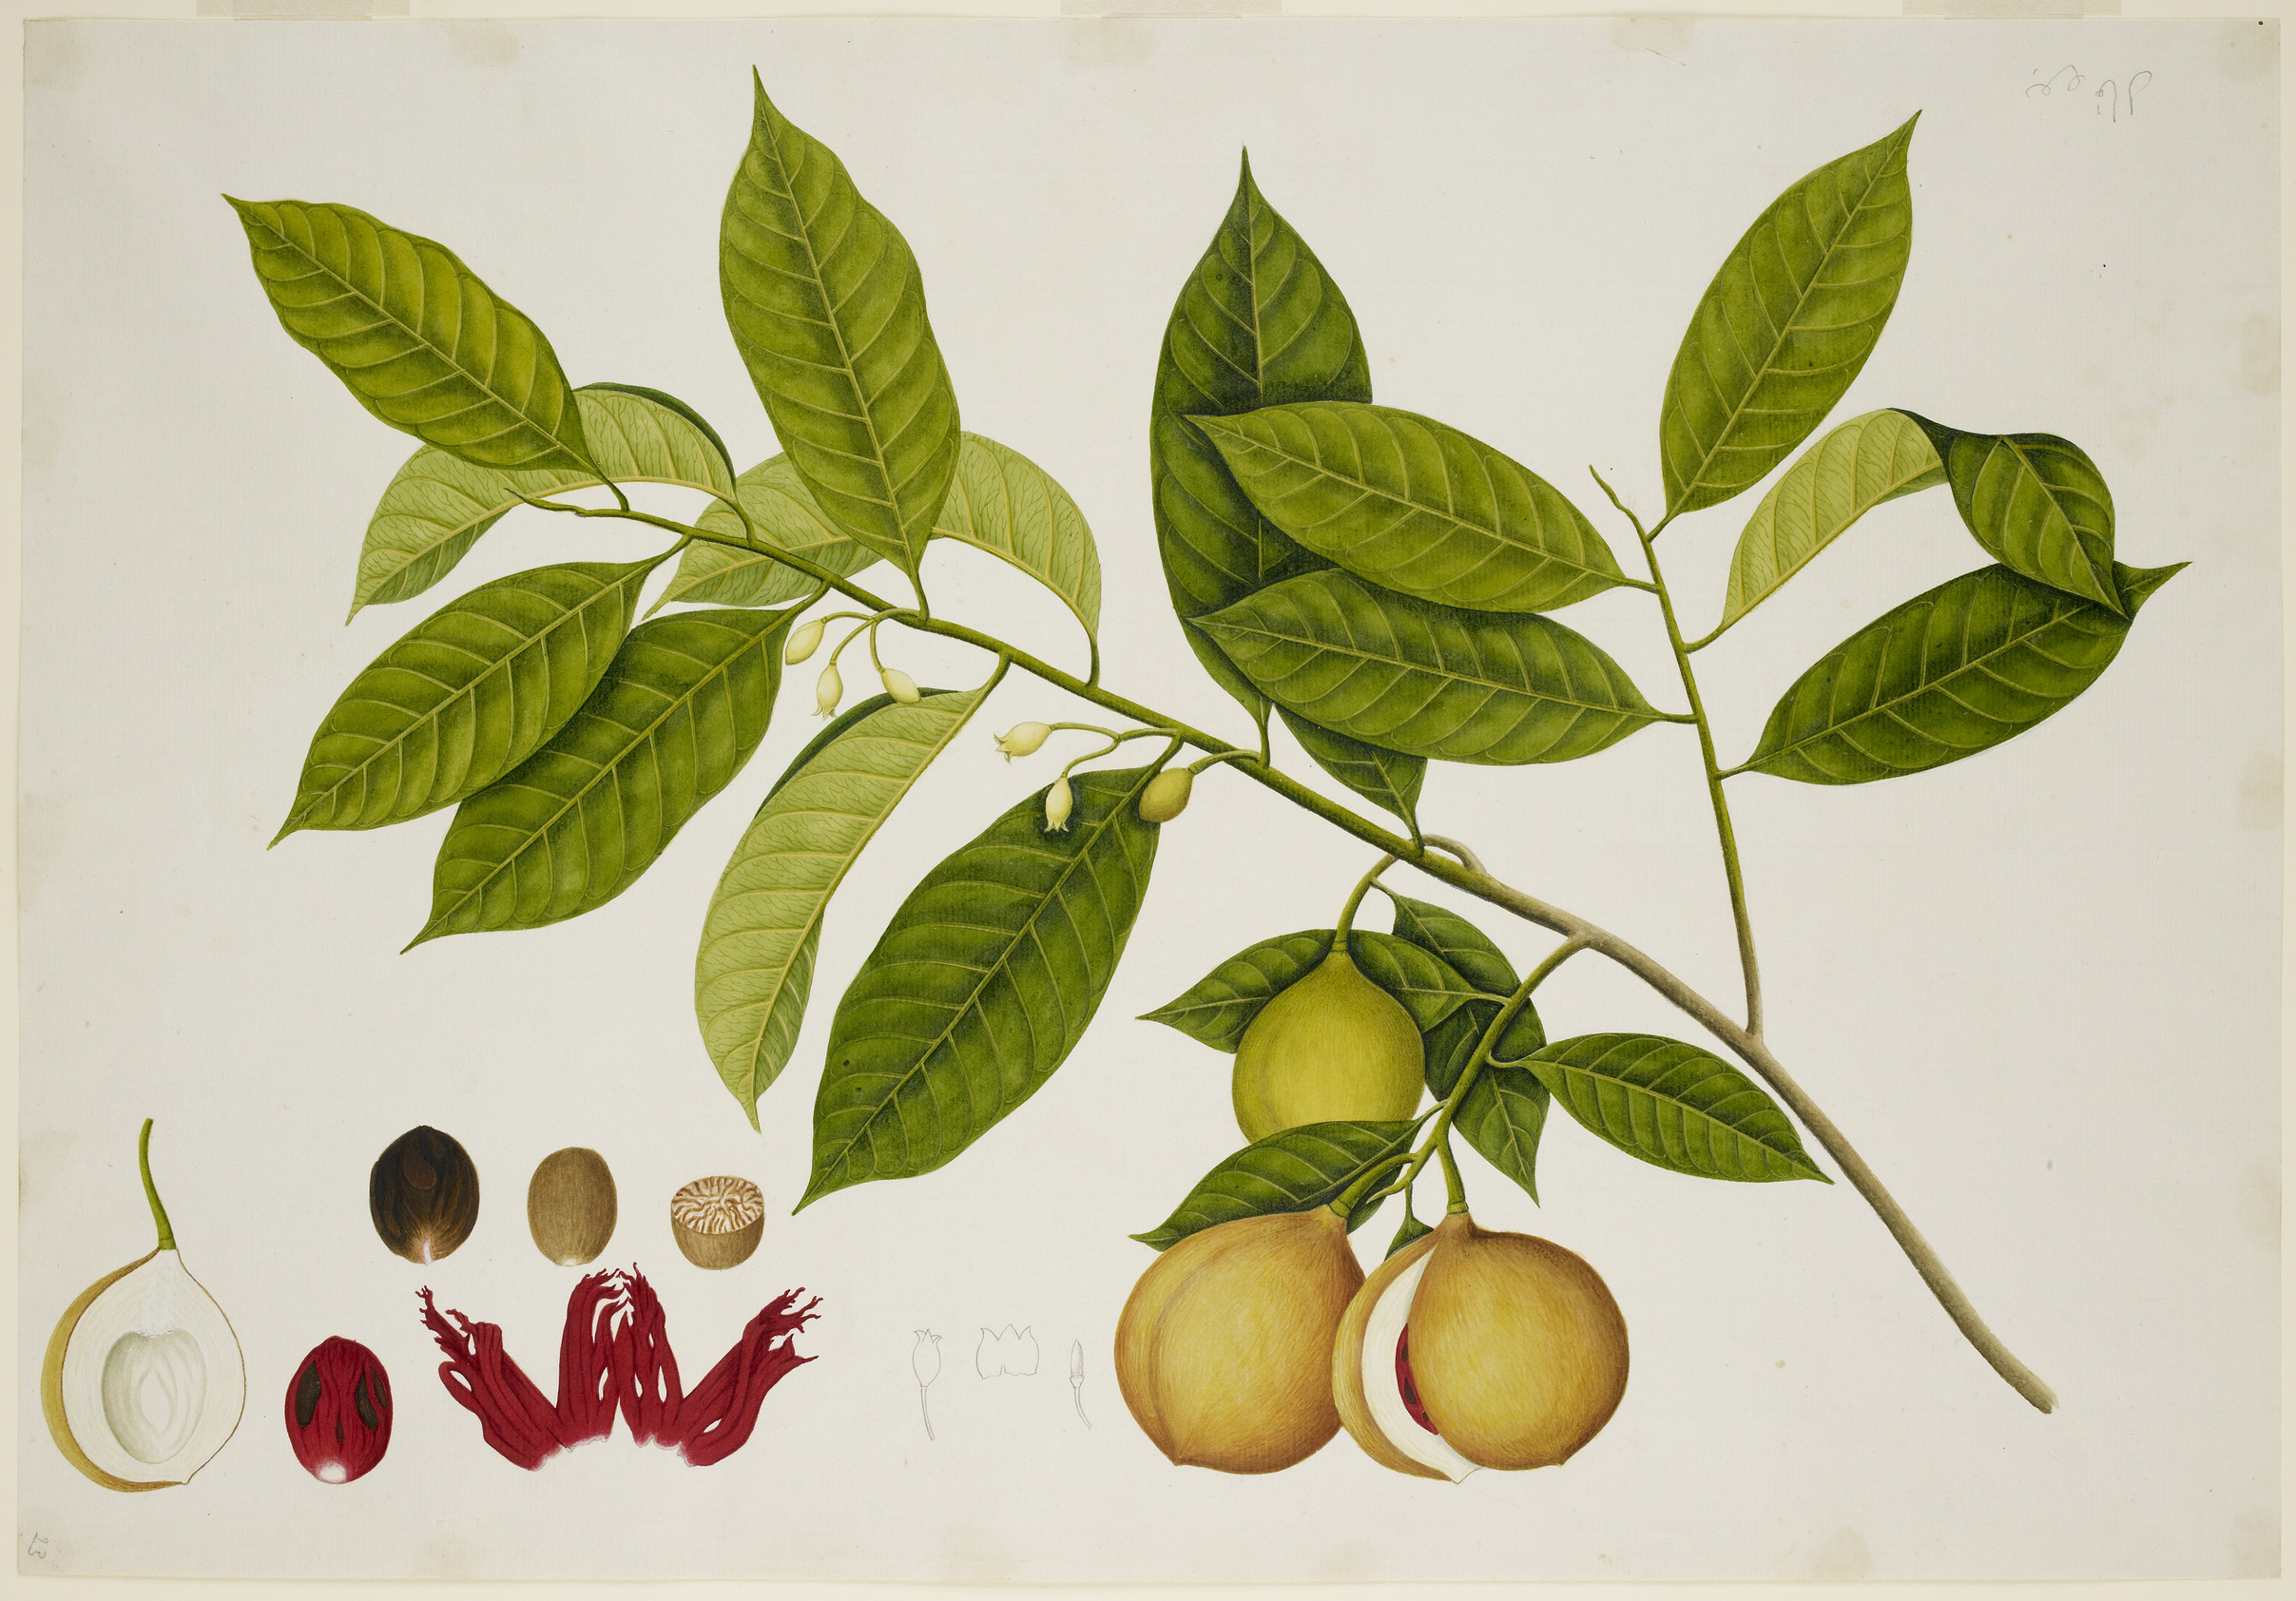 File:Nutmeg Tree - 40 drawings of plants at Bencoolen, Sumatra (c.